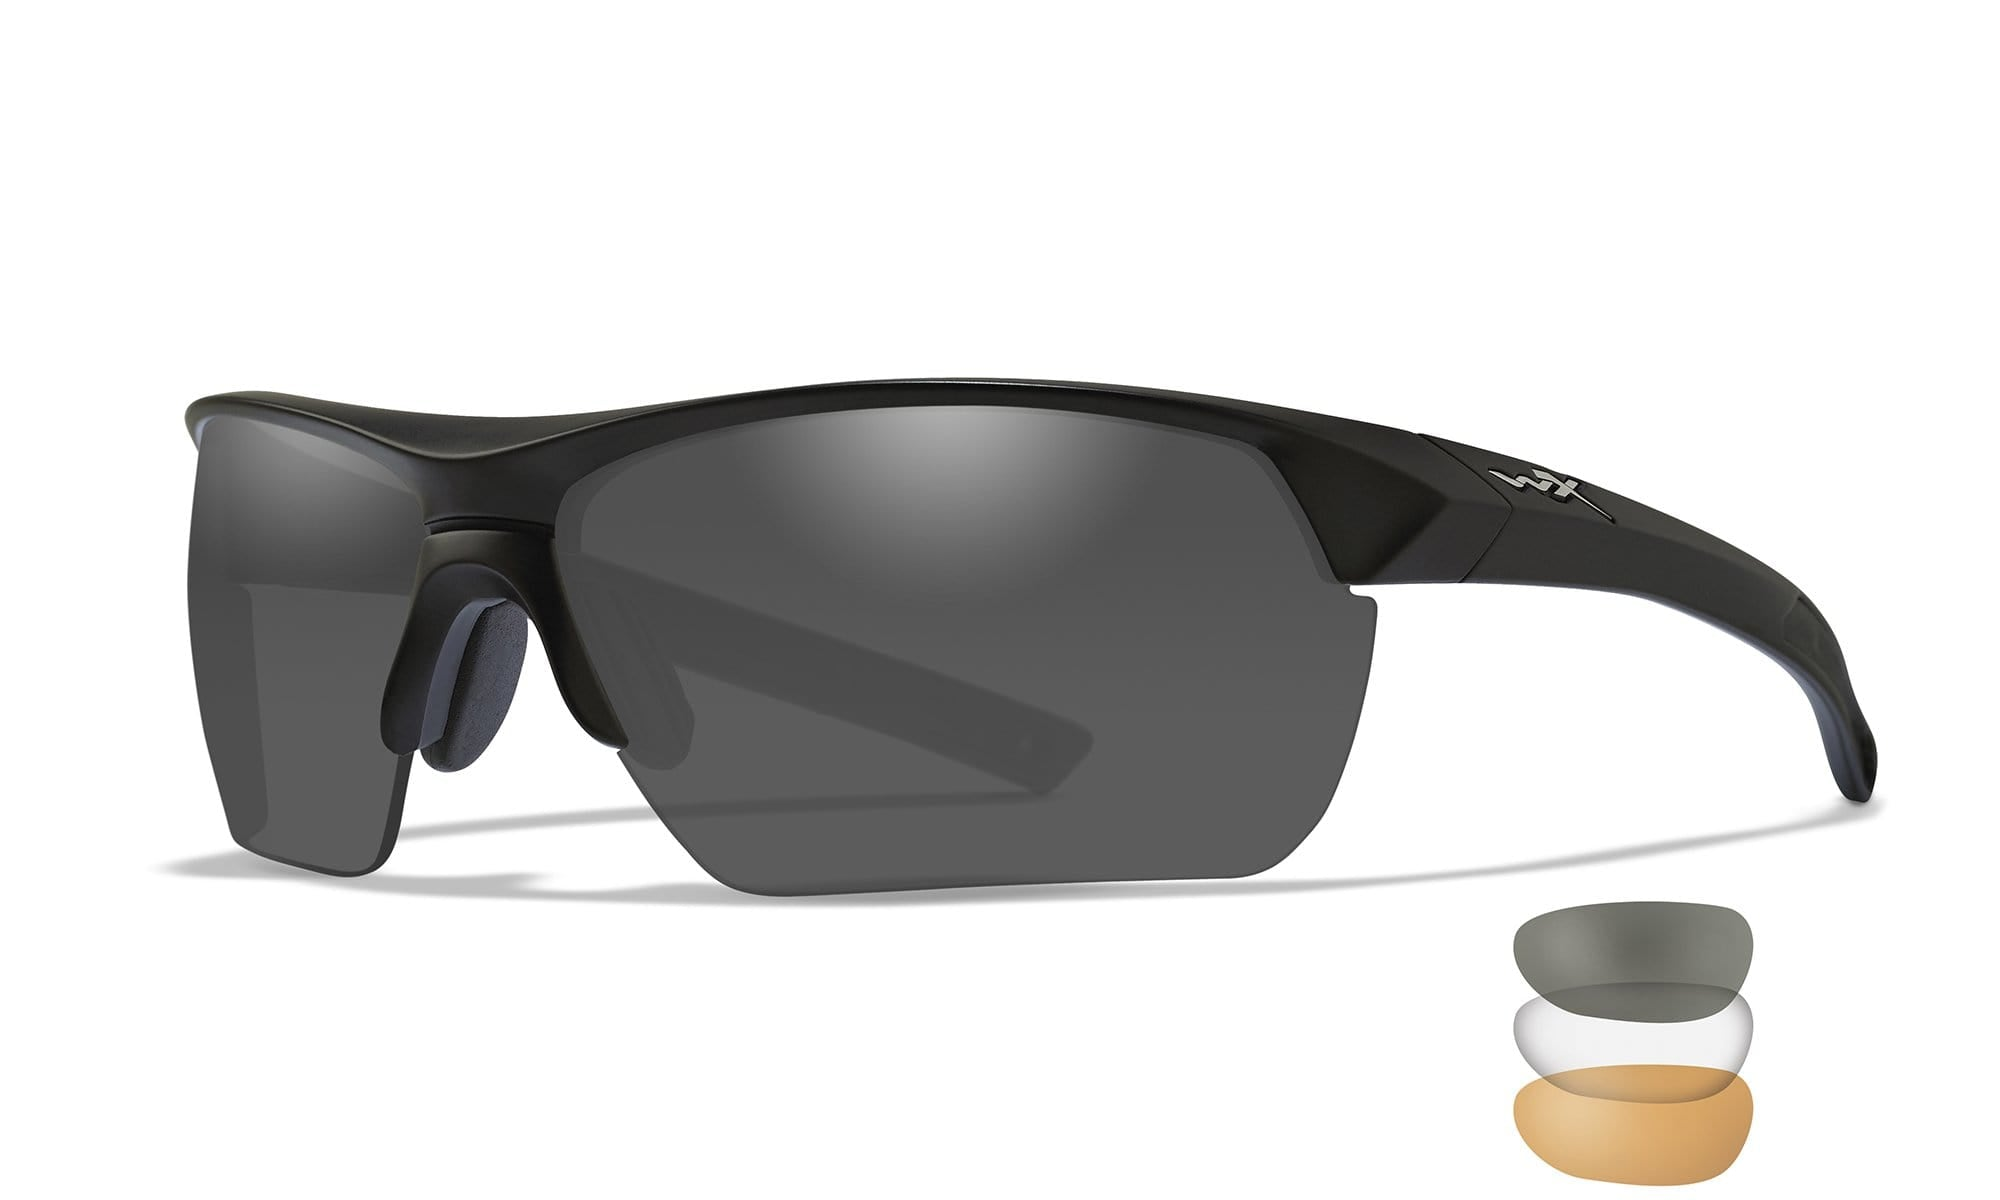 WILEY X Guard Advanced Sunglasses